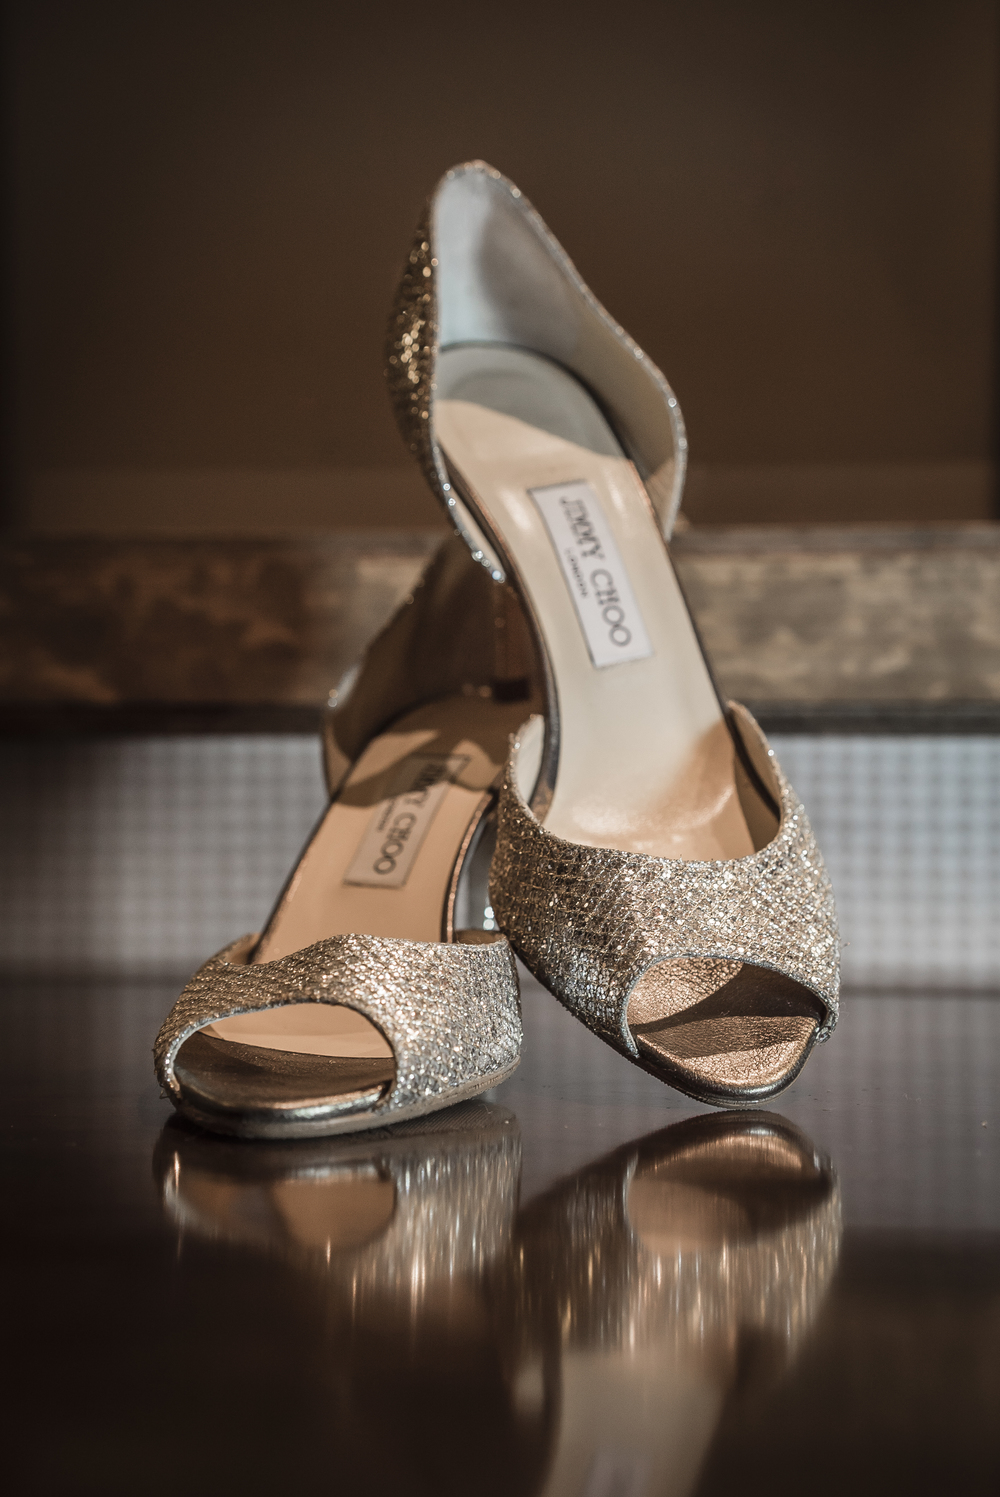 Tall brides looking for short heels love these Jimmy Choo bridal shoes.  Las Vegas Wedding Planner Andrea Eppolito designed this luxury wedding at Red Rock Country Club. By Dzign handled the decor shot by wedding photographer Ella Gagiano.